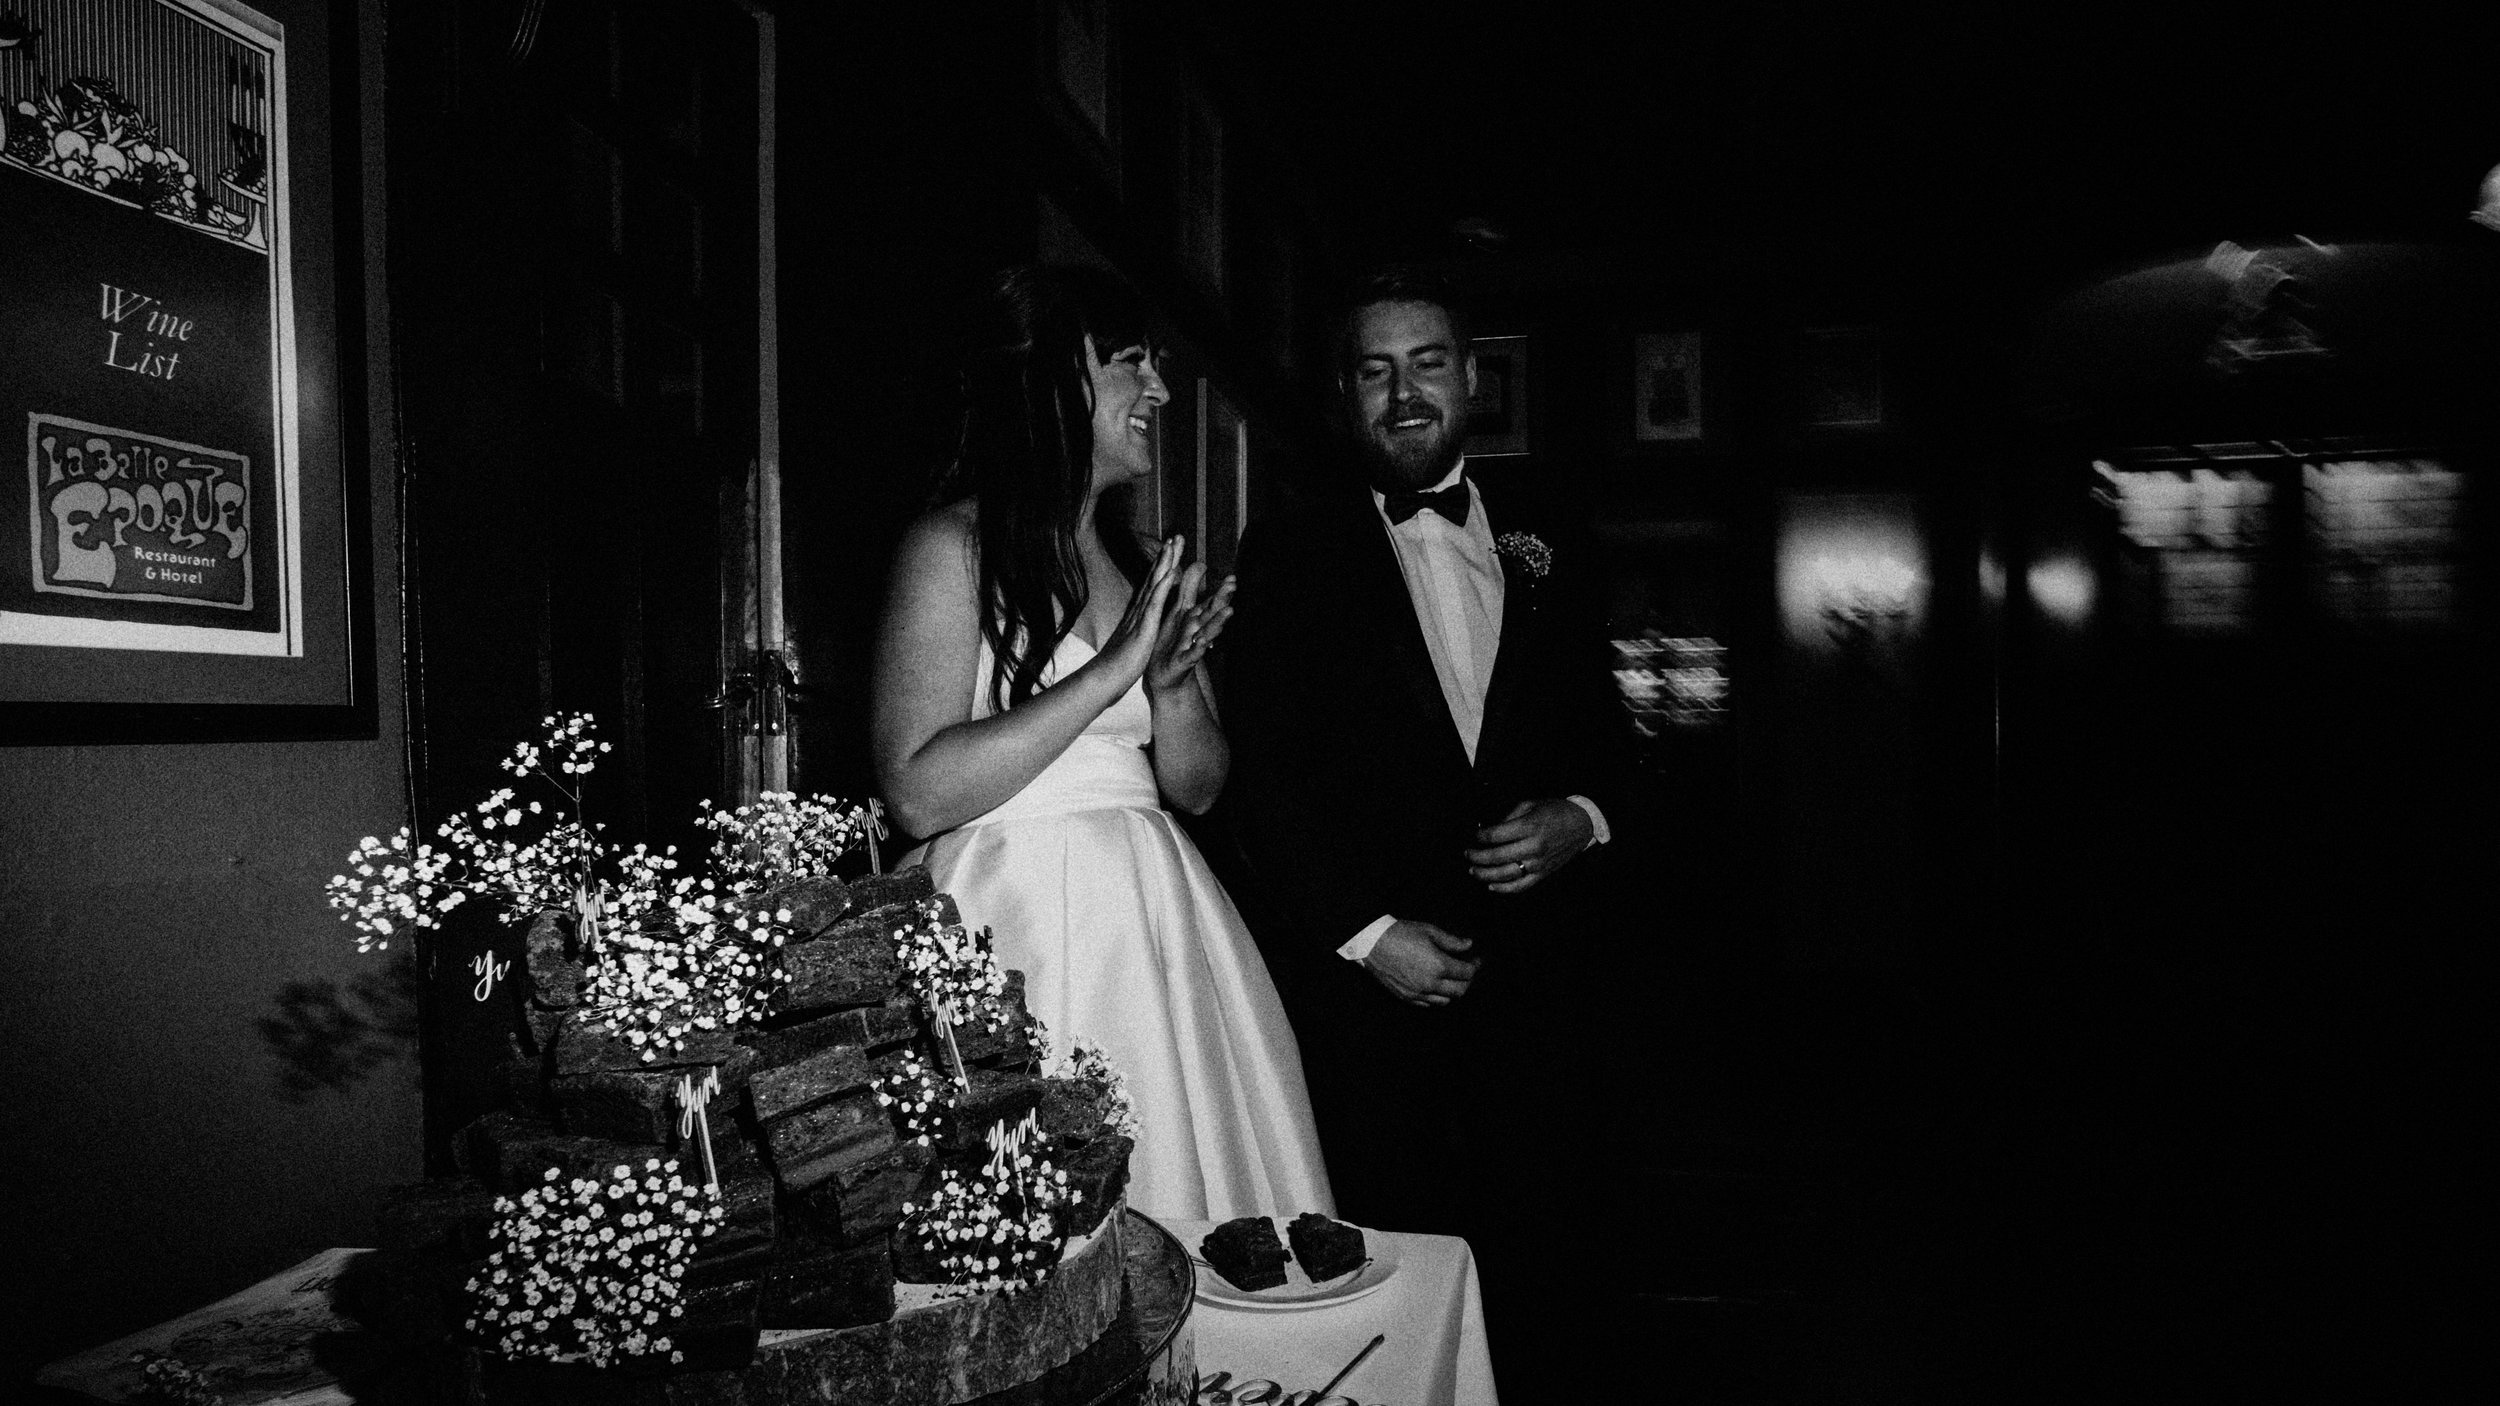 LaurenLee_UK_Documentary_Wedding_Photographer_Belle_Epoque0330.jpg